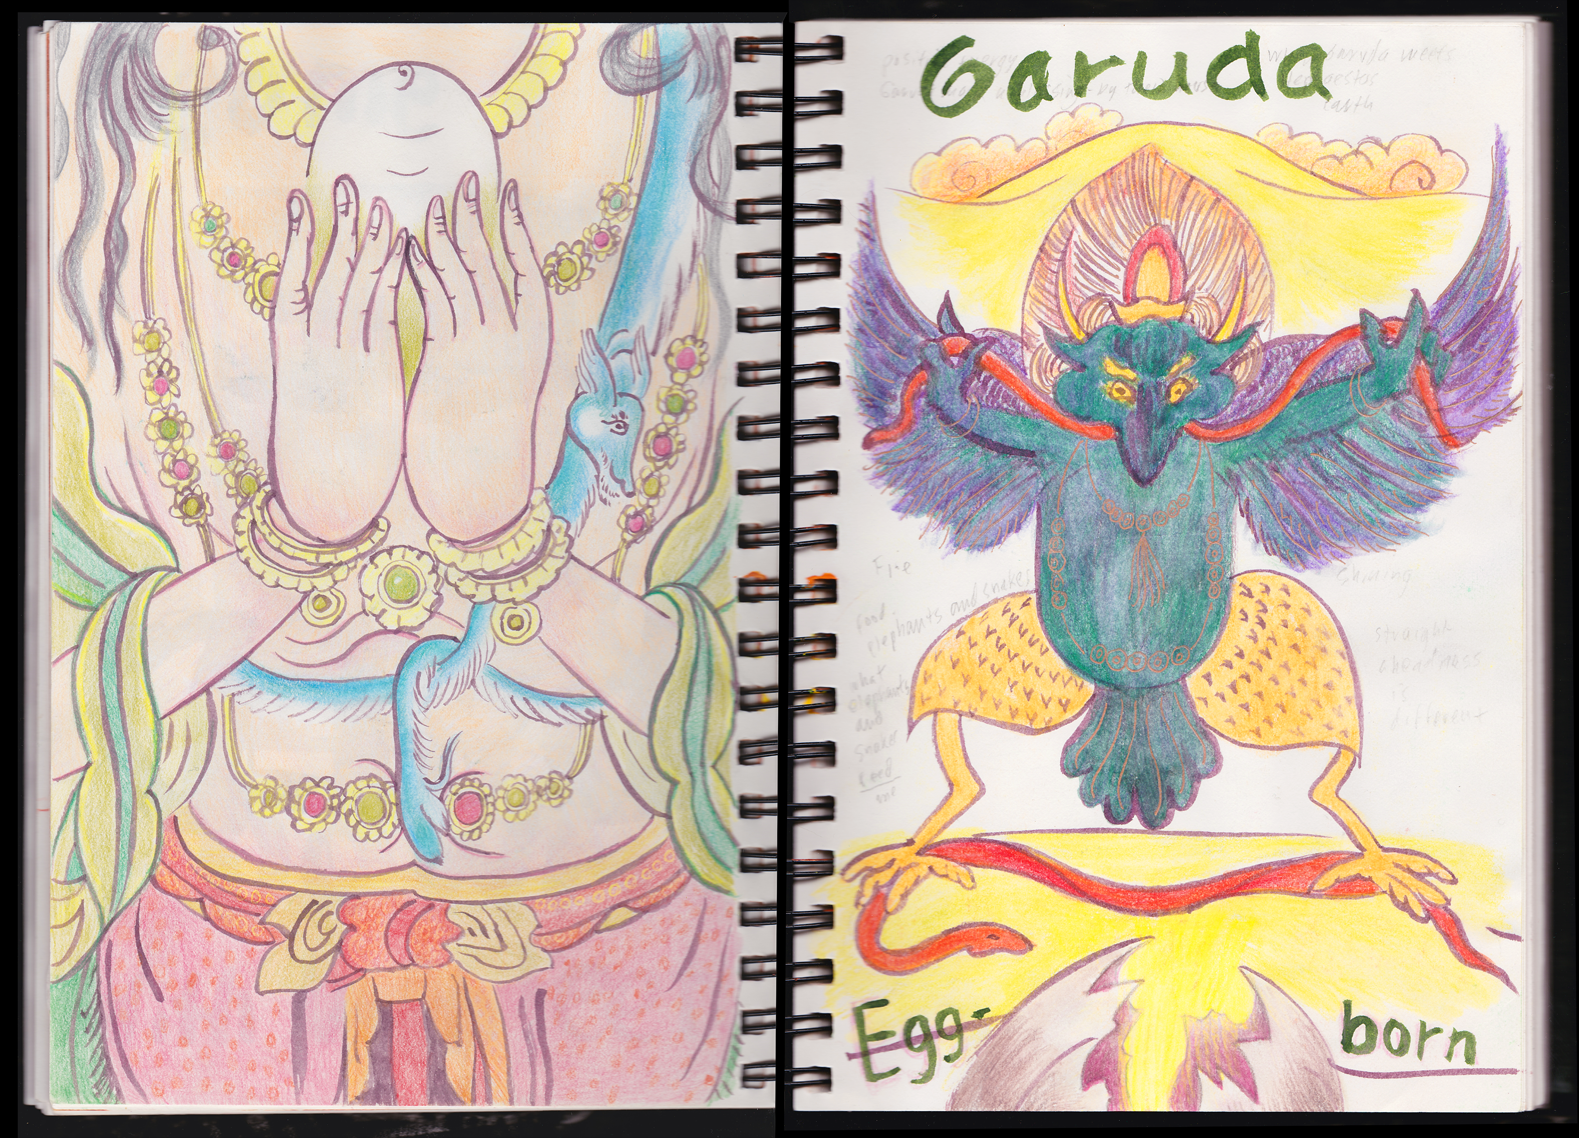 Cosmic Egg and Garuda